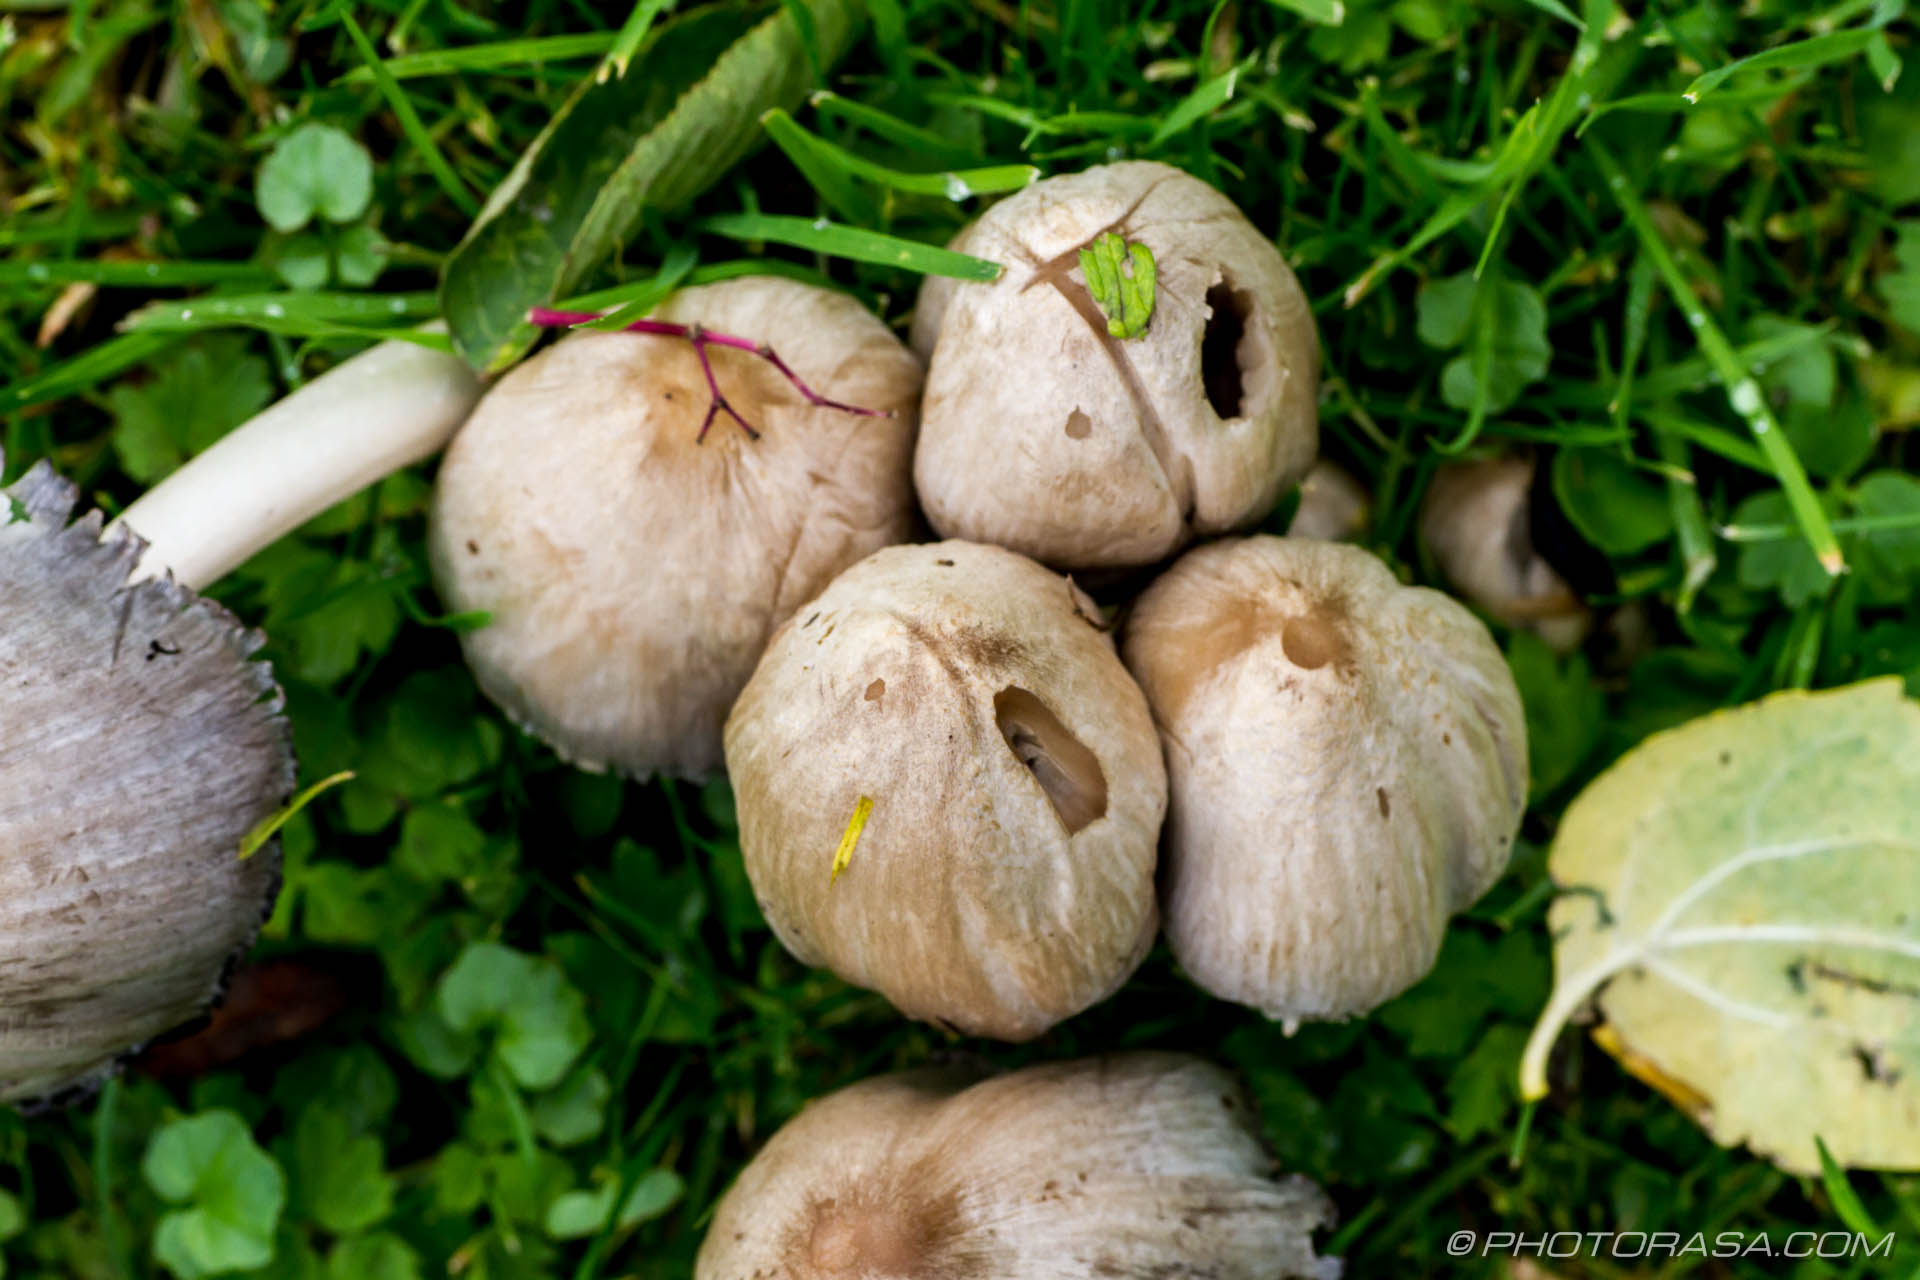 http://photorasa.com/common-ink-cap/ink-cap-closed-cups/